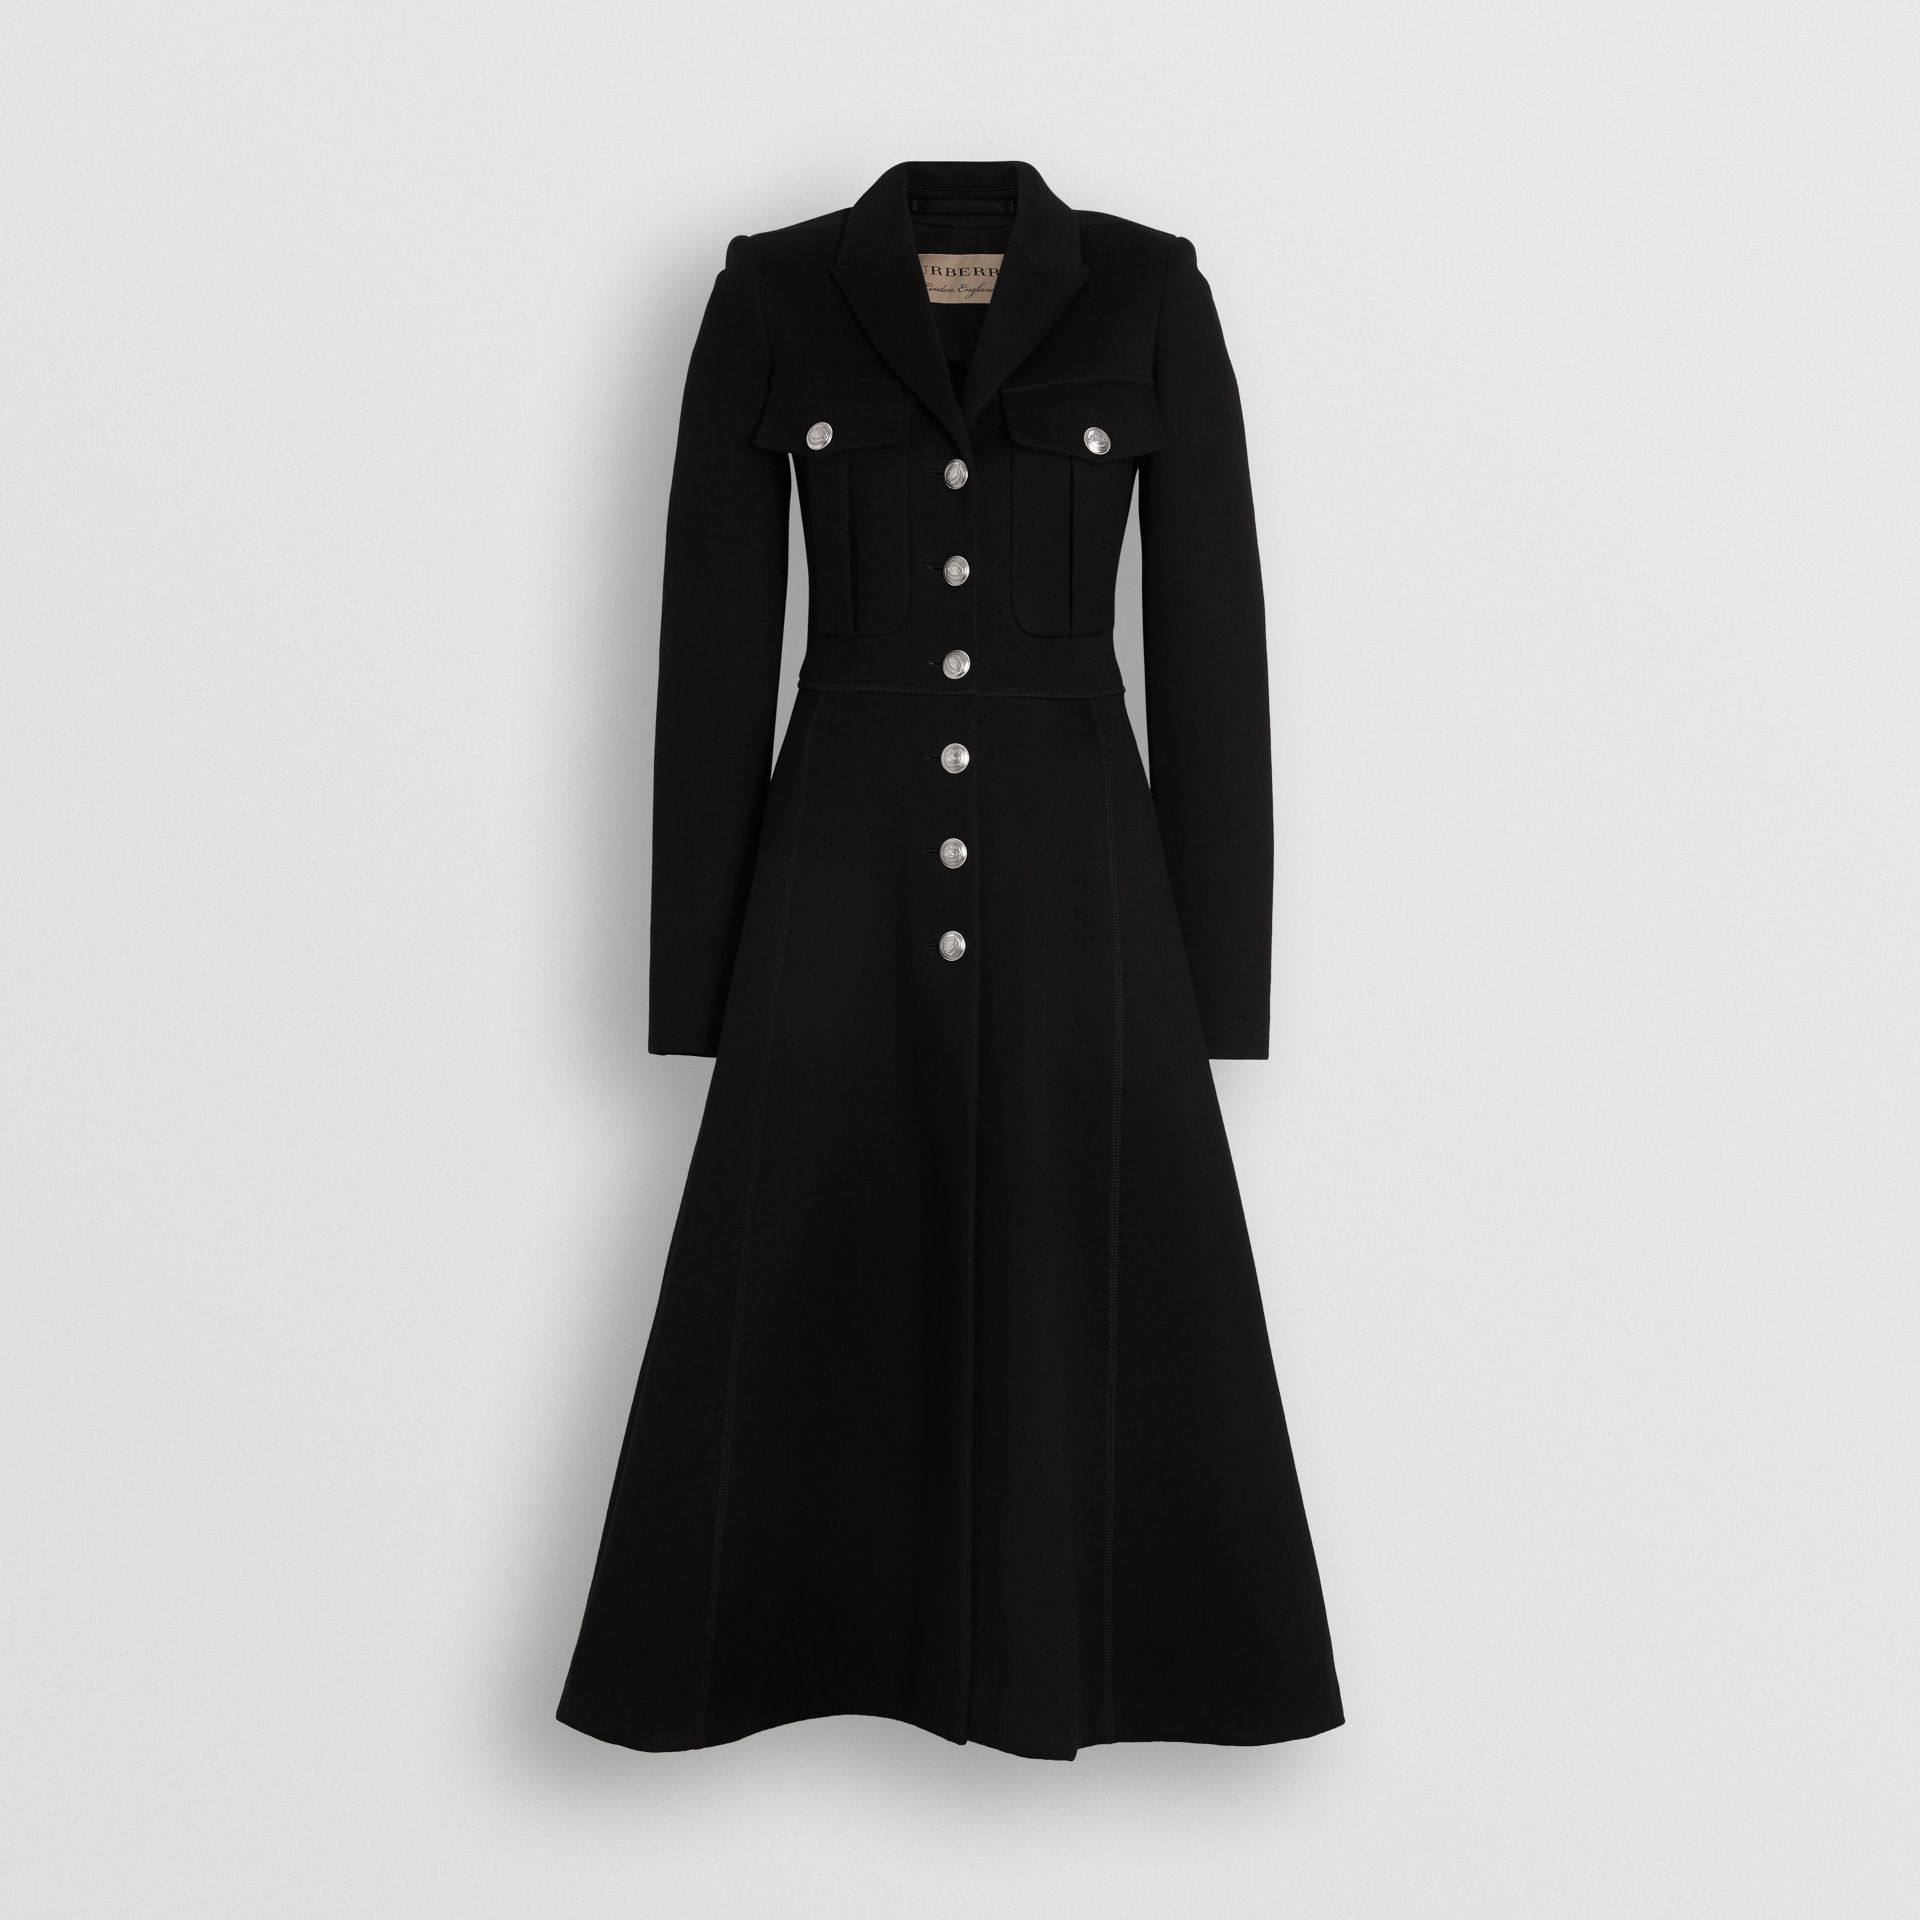 Bonded Cotton Blend Jersey Tailored Coat in Black - Women | Burberry - gallery image 3